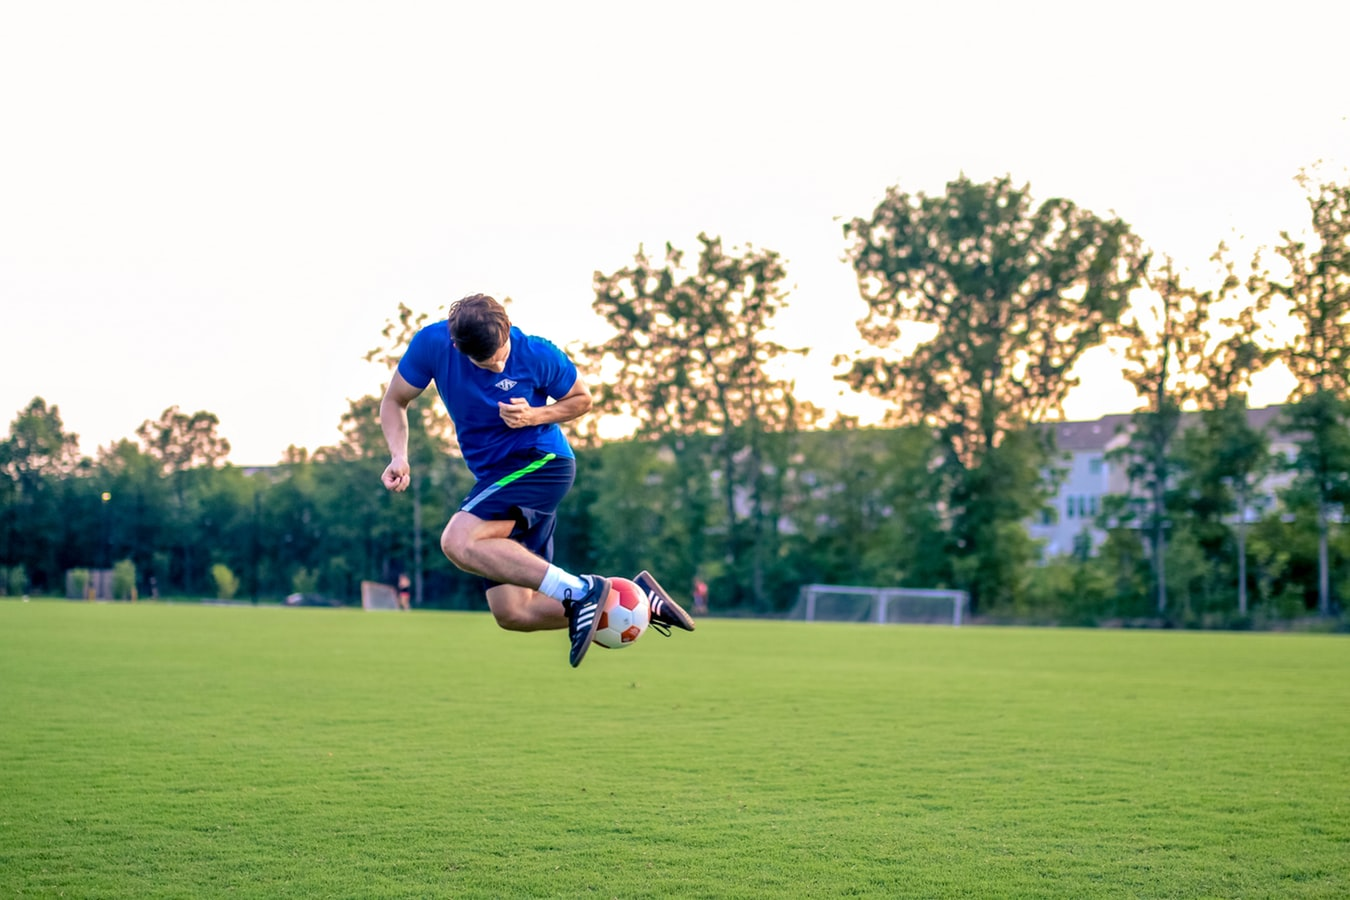 football player jumping